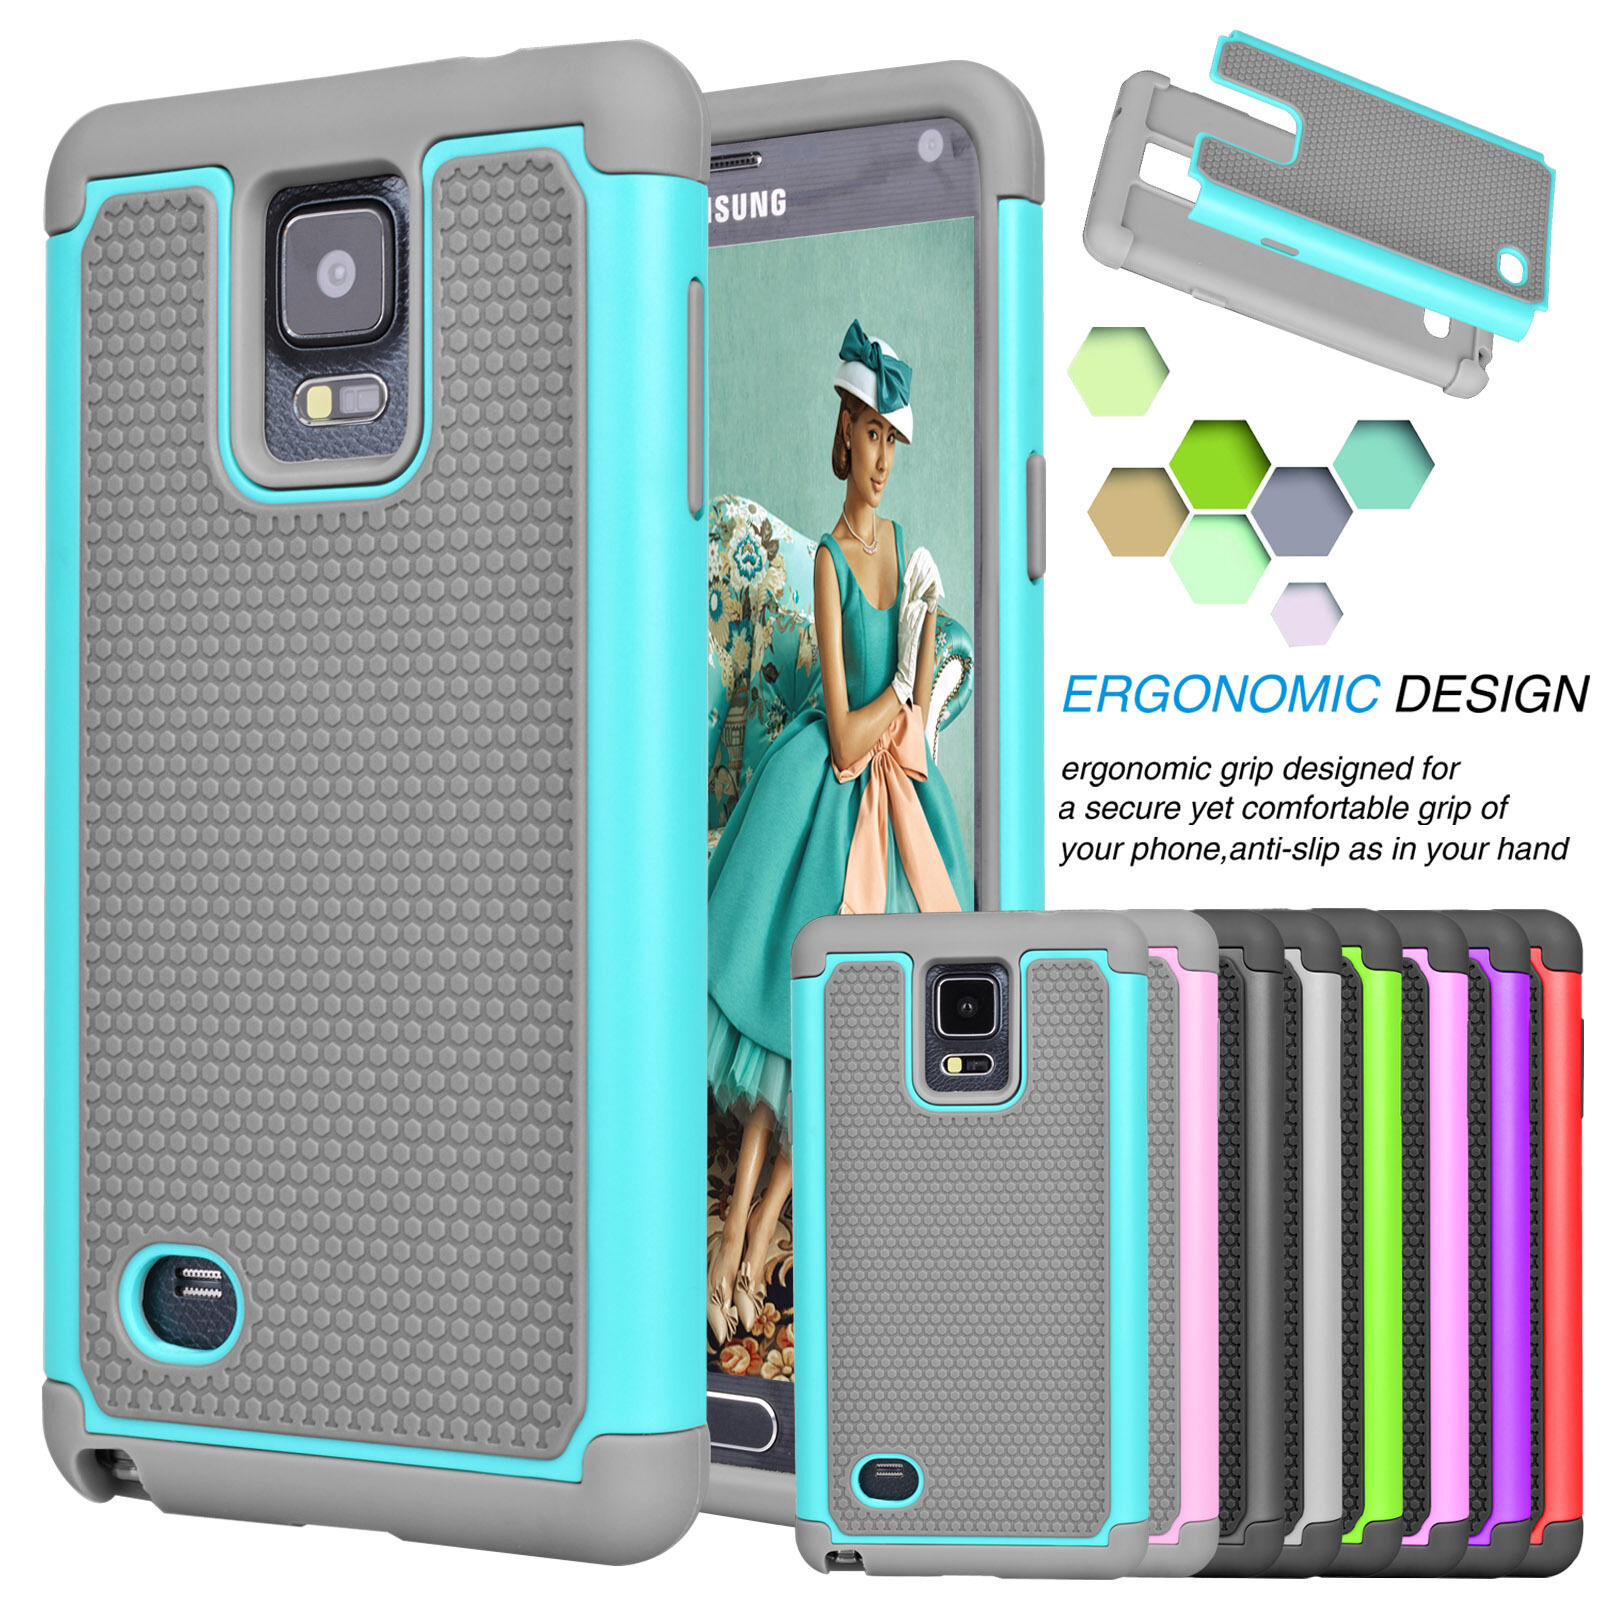 Купить Saveupmore - For Samsung Galaxy Note 4 Armor Shockproof Hybrid Rugged Rubber Hard Case Cover